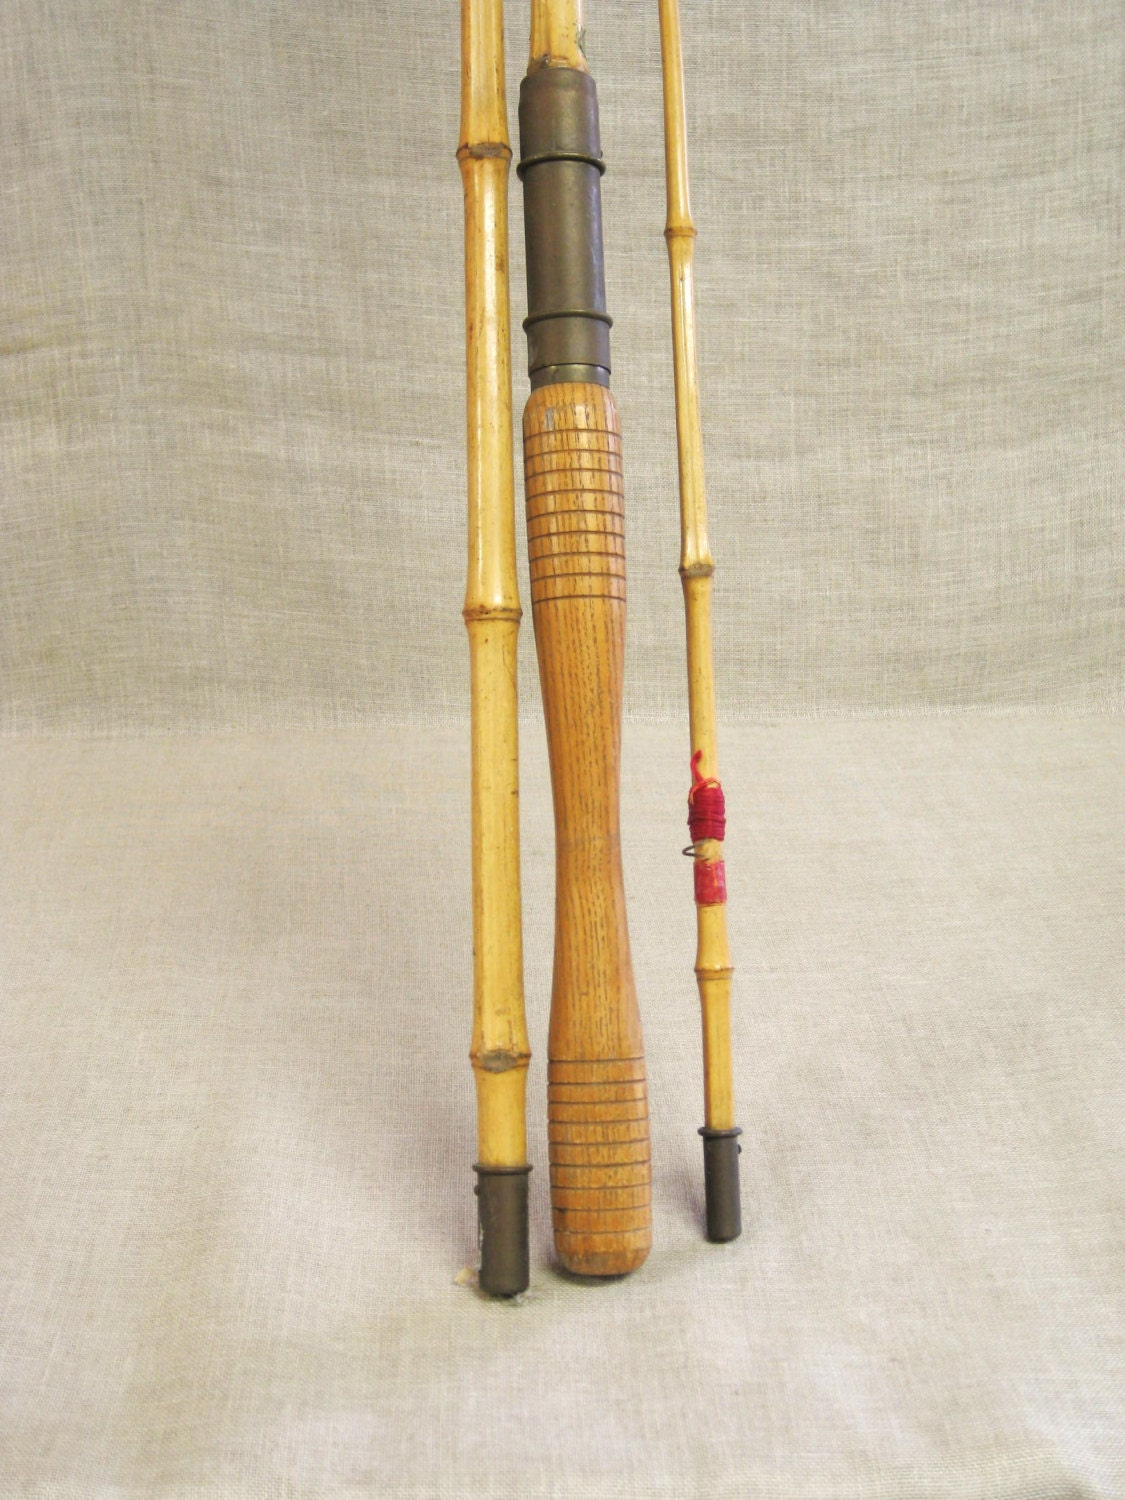 Antique bamboo fly fishing rod orion chicago foot cane